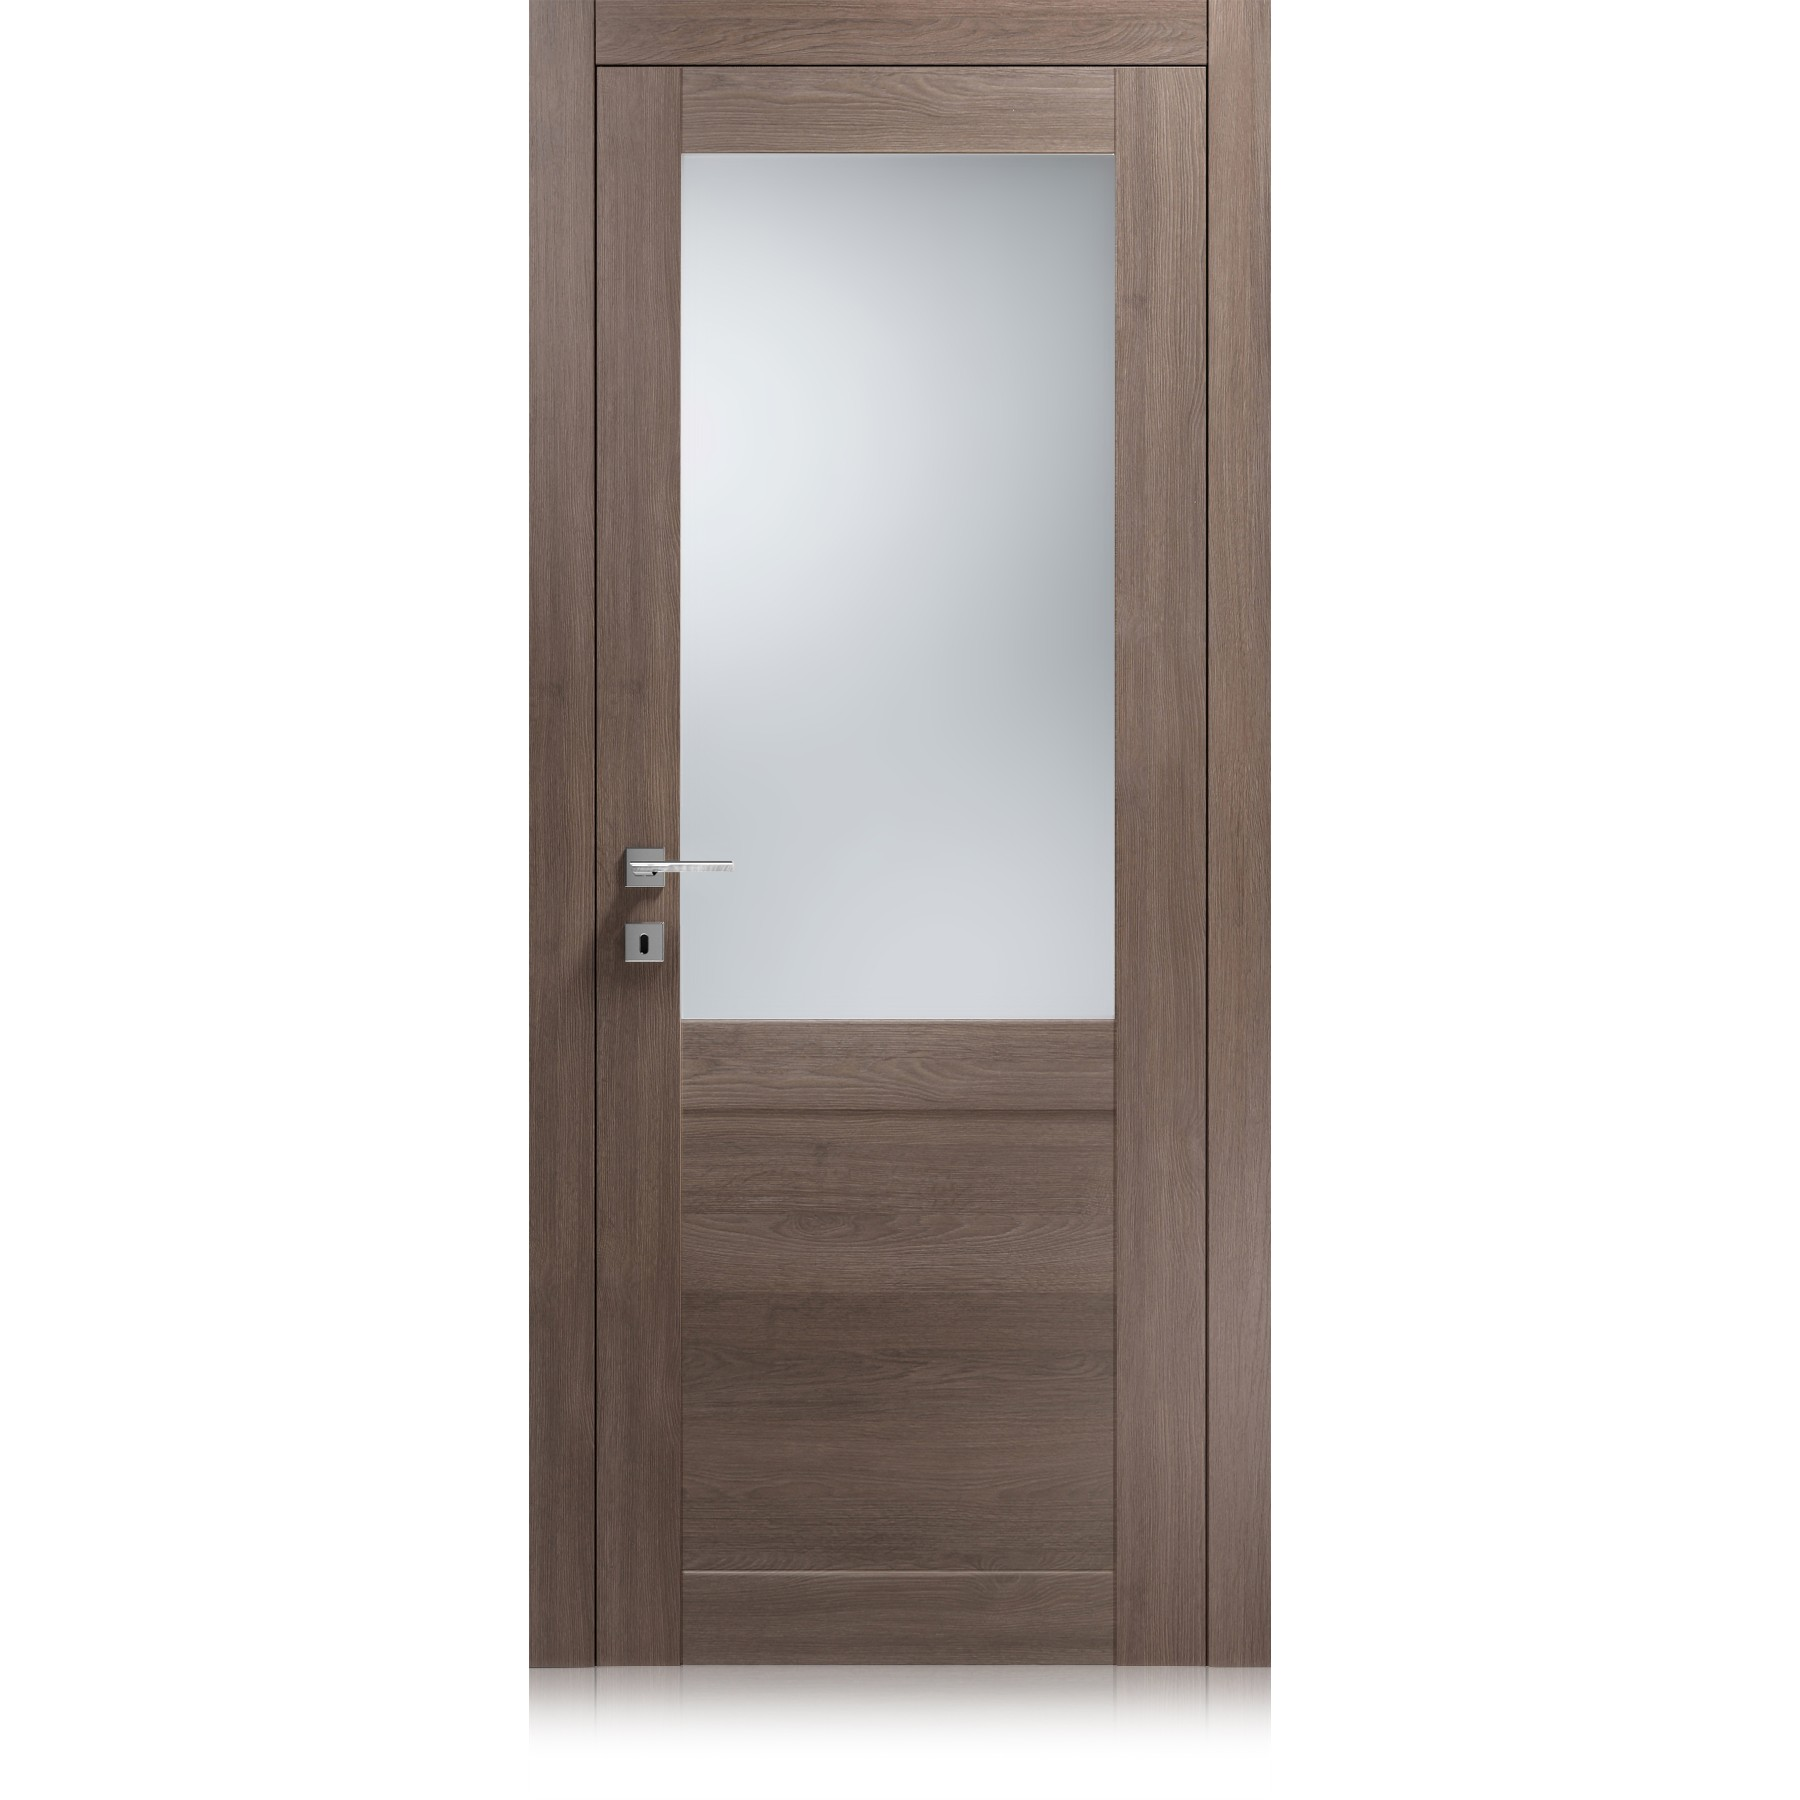 Area / 31 Simply ontario cuoio door